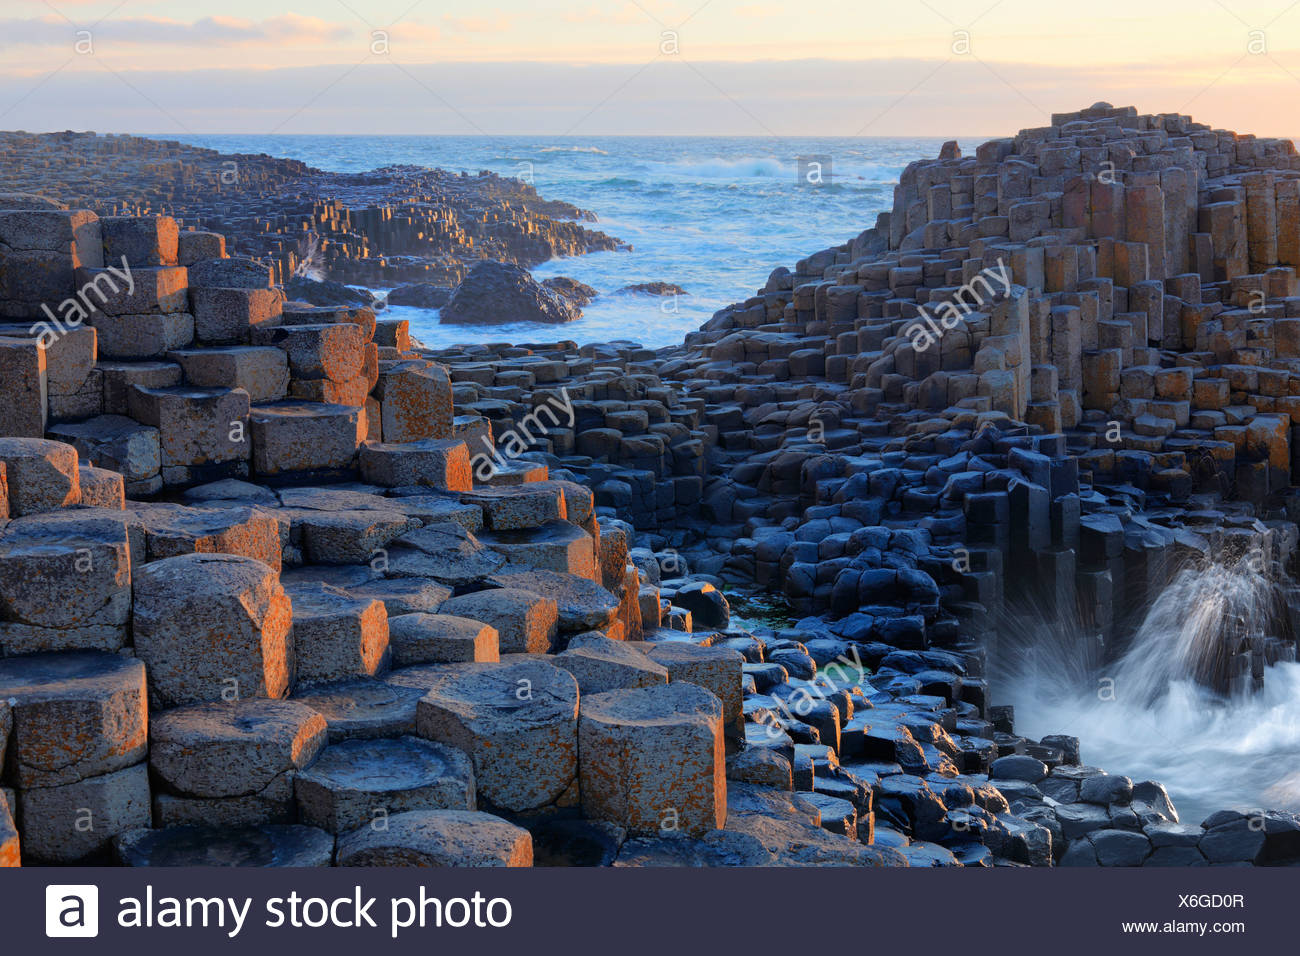 Basaltic columns, Giant's Causeway, Causeway Coast, County Antrim, Northern Ireland, United Kingdom, Europe - Stock Image